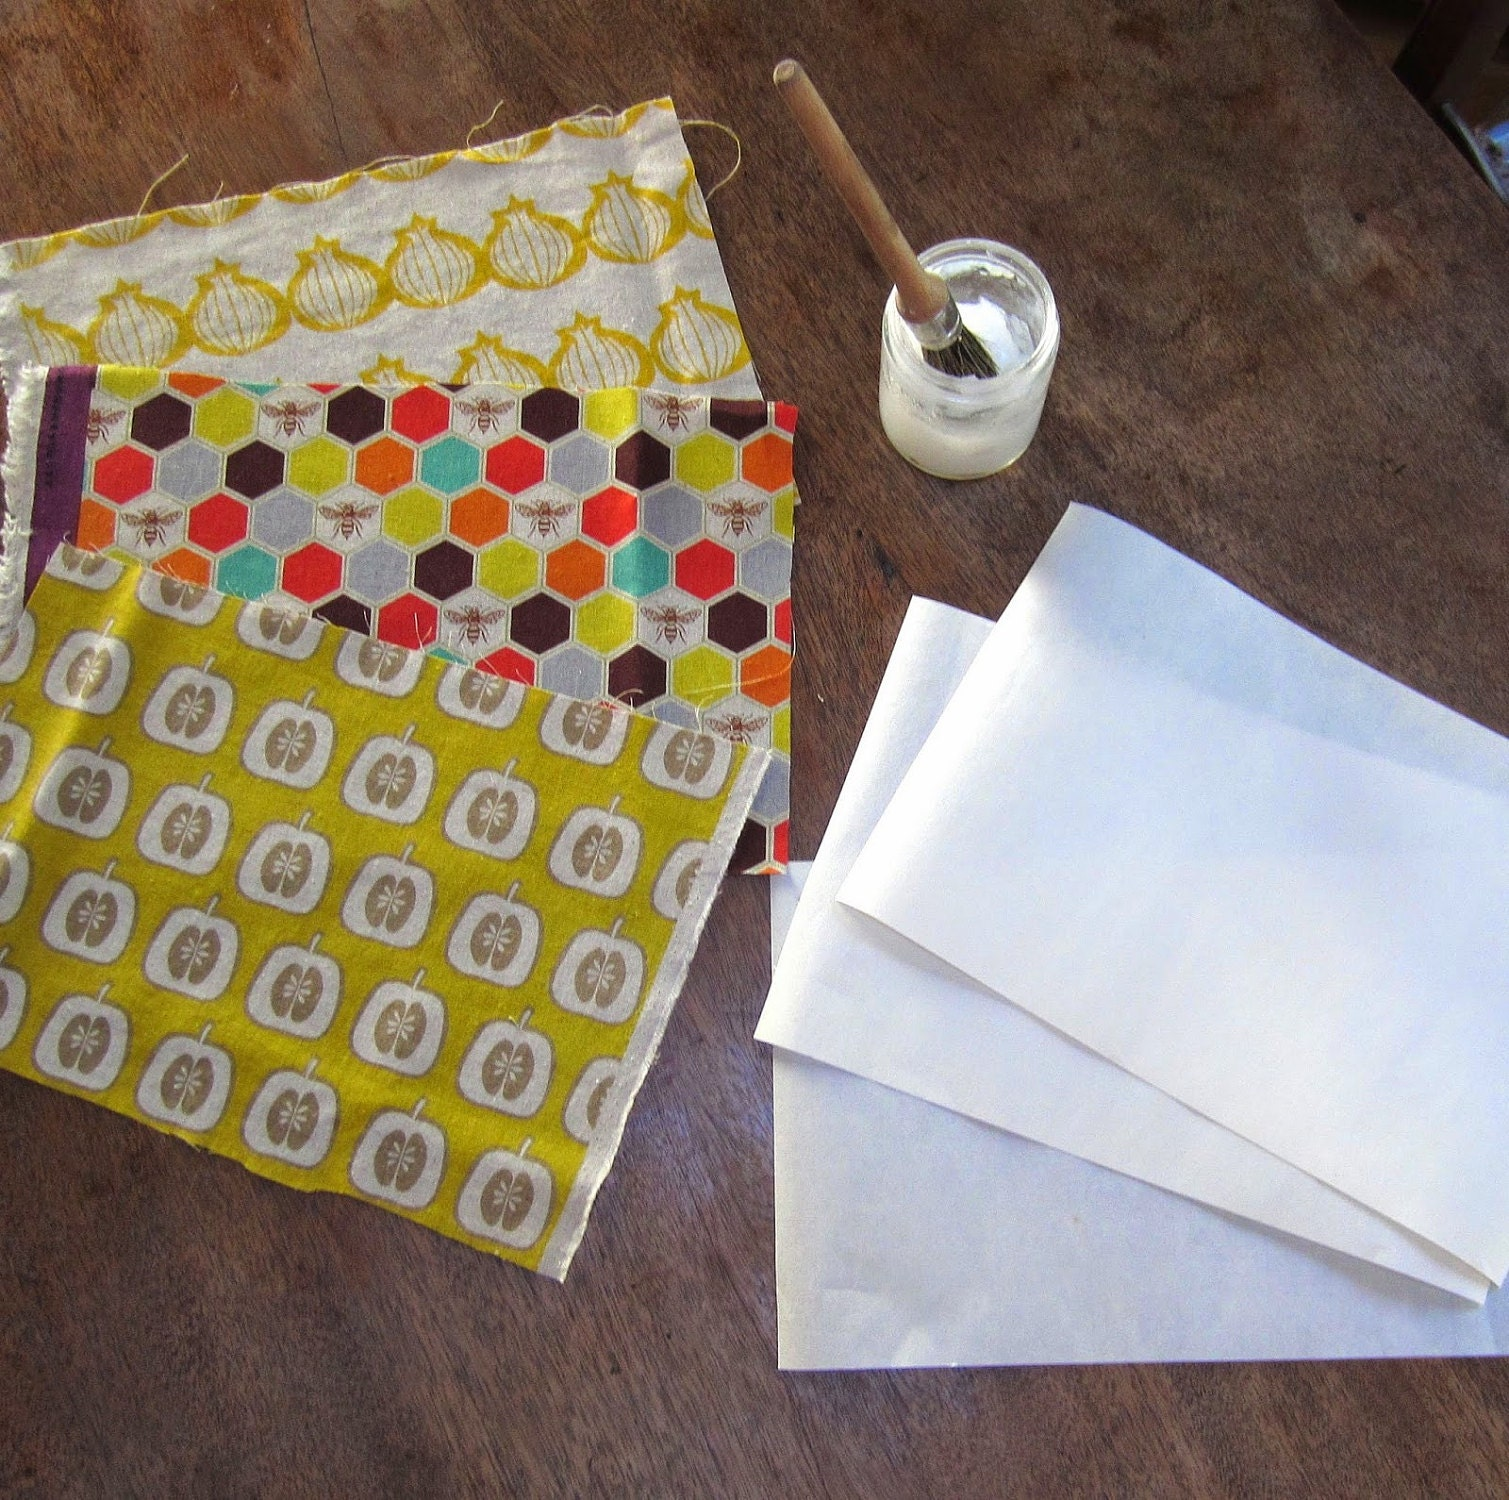 Fabric and Japanese paper ready to be pasted together